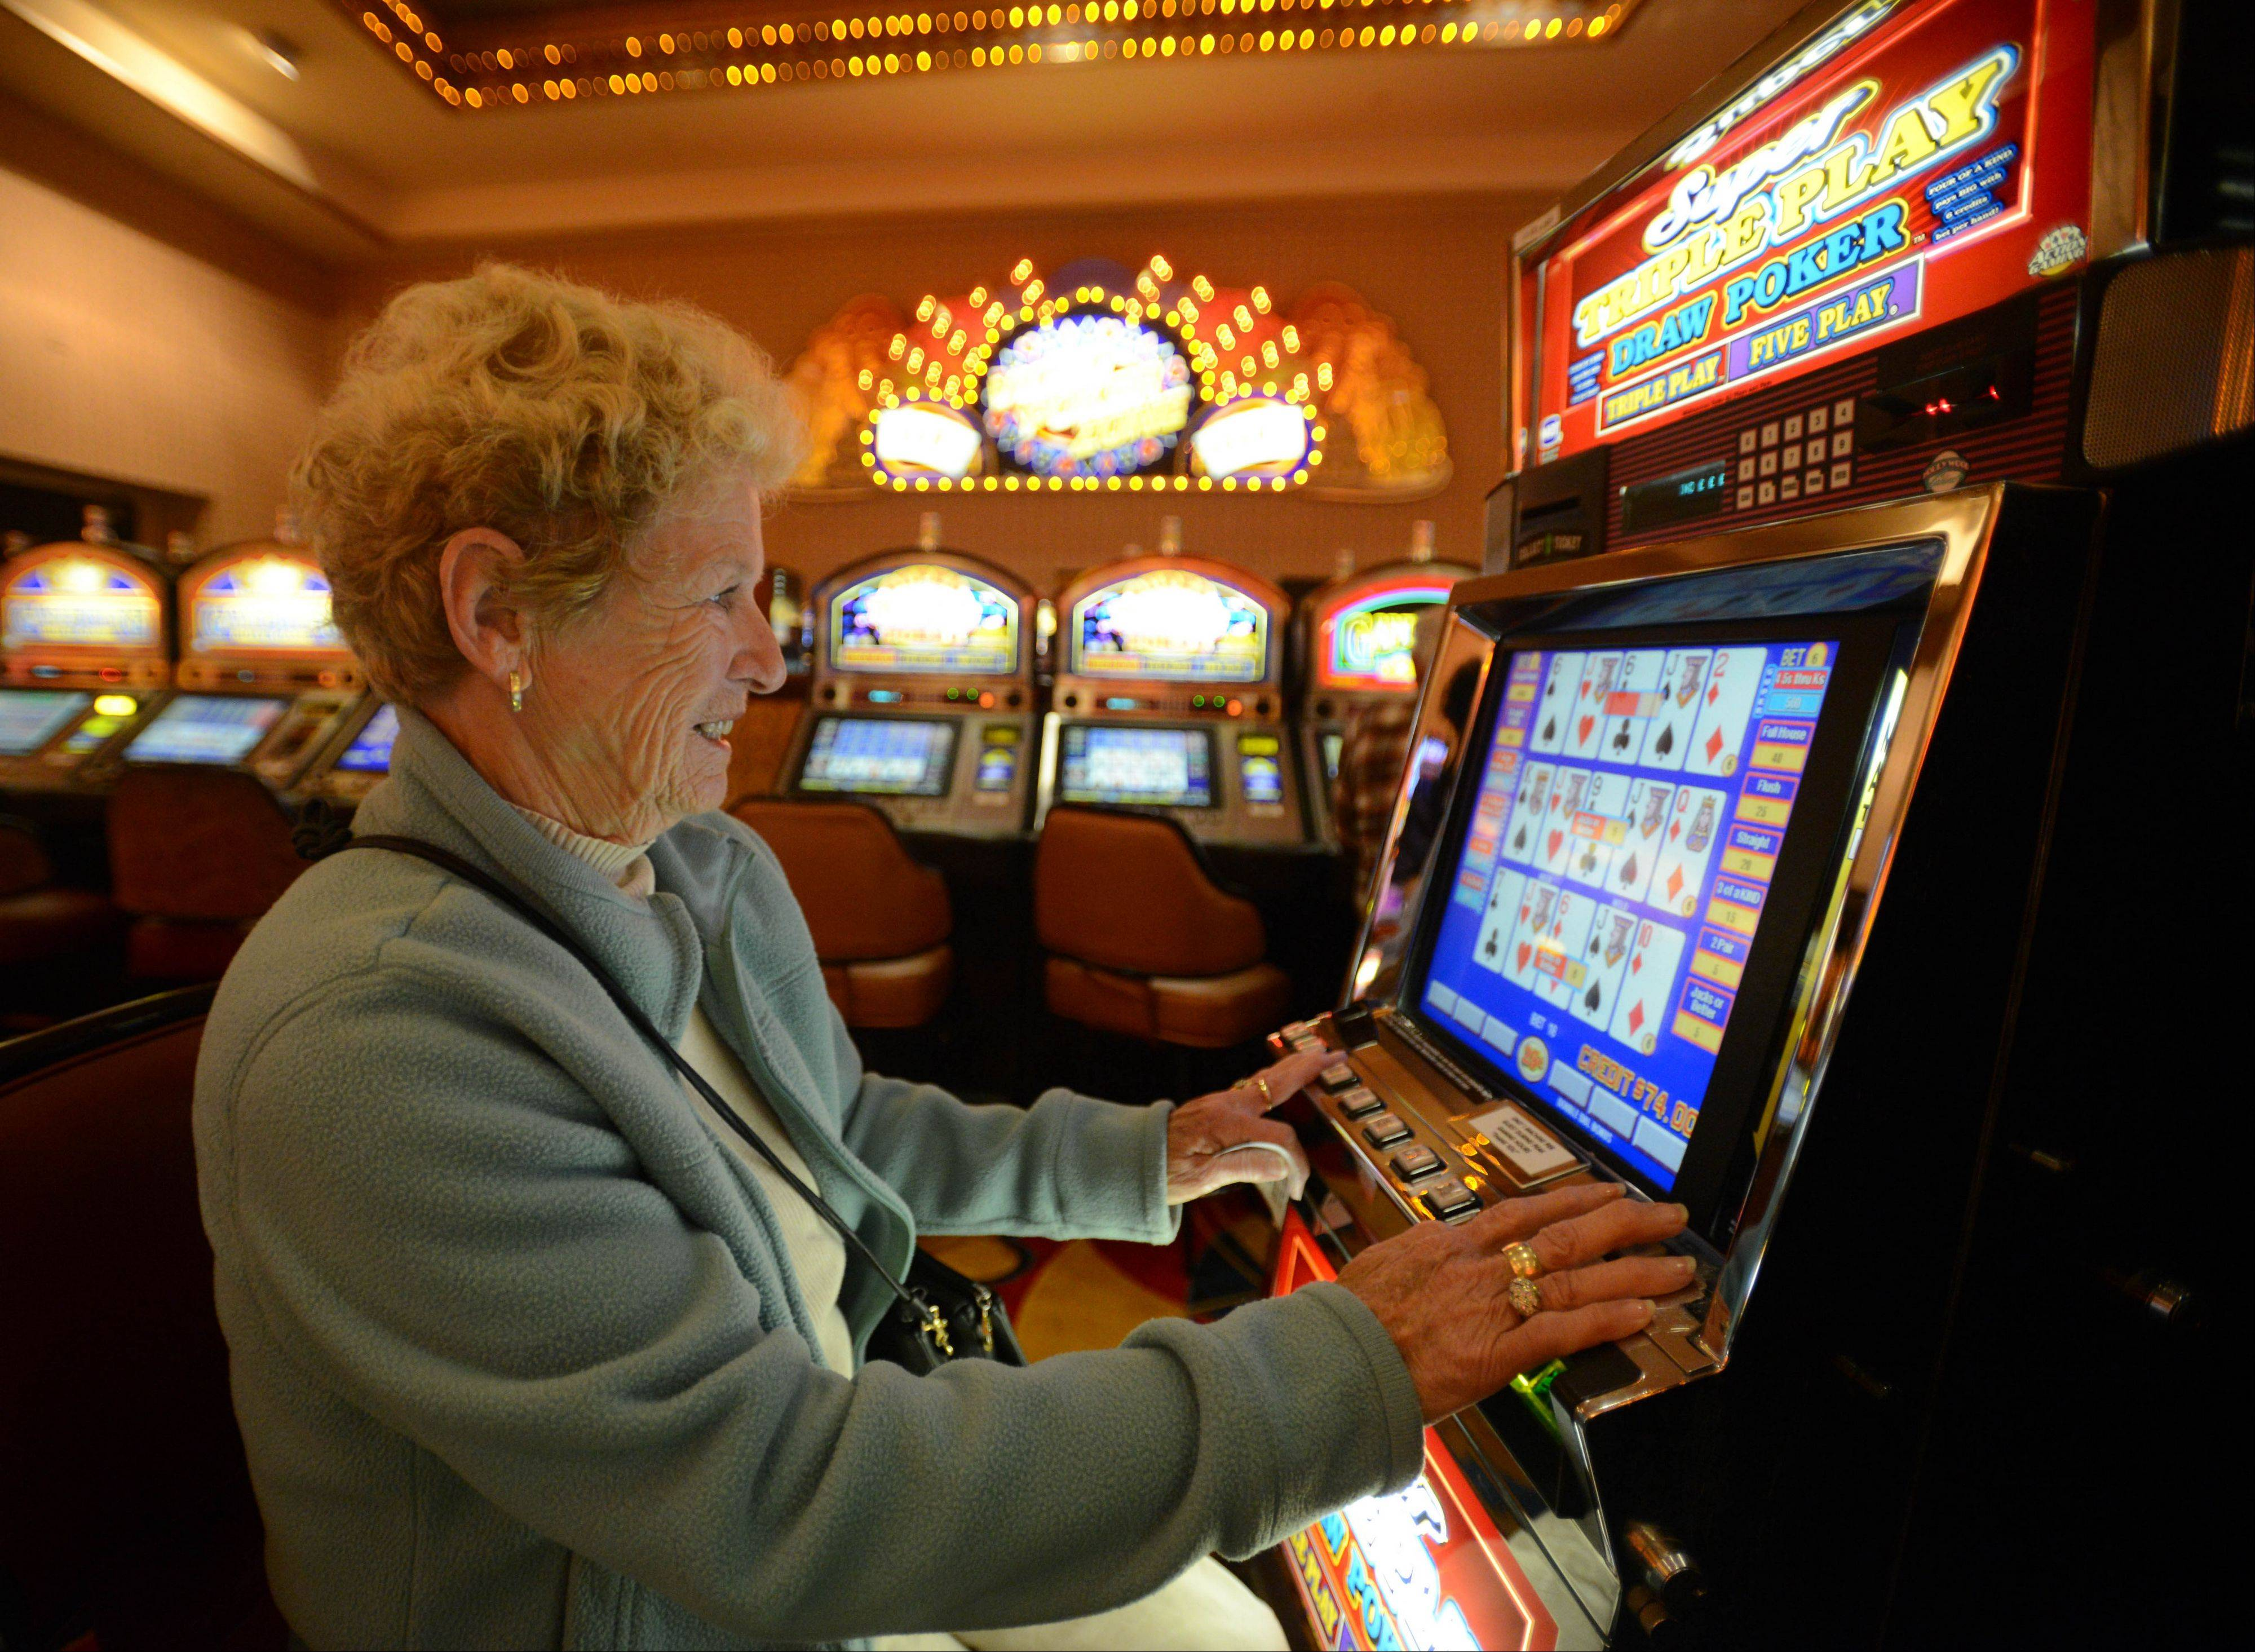 Bobbie Vallo of Naperville plays at Hollywood Casino Aurora during the establishment's 20th anniversary month. Hollywood Casino is celebrating two decades in business after opening June 17, 1993.